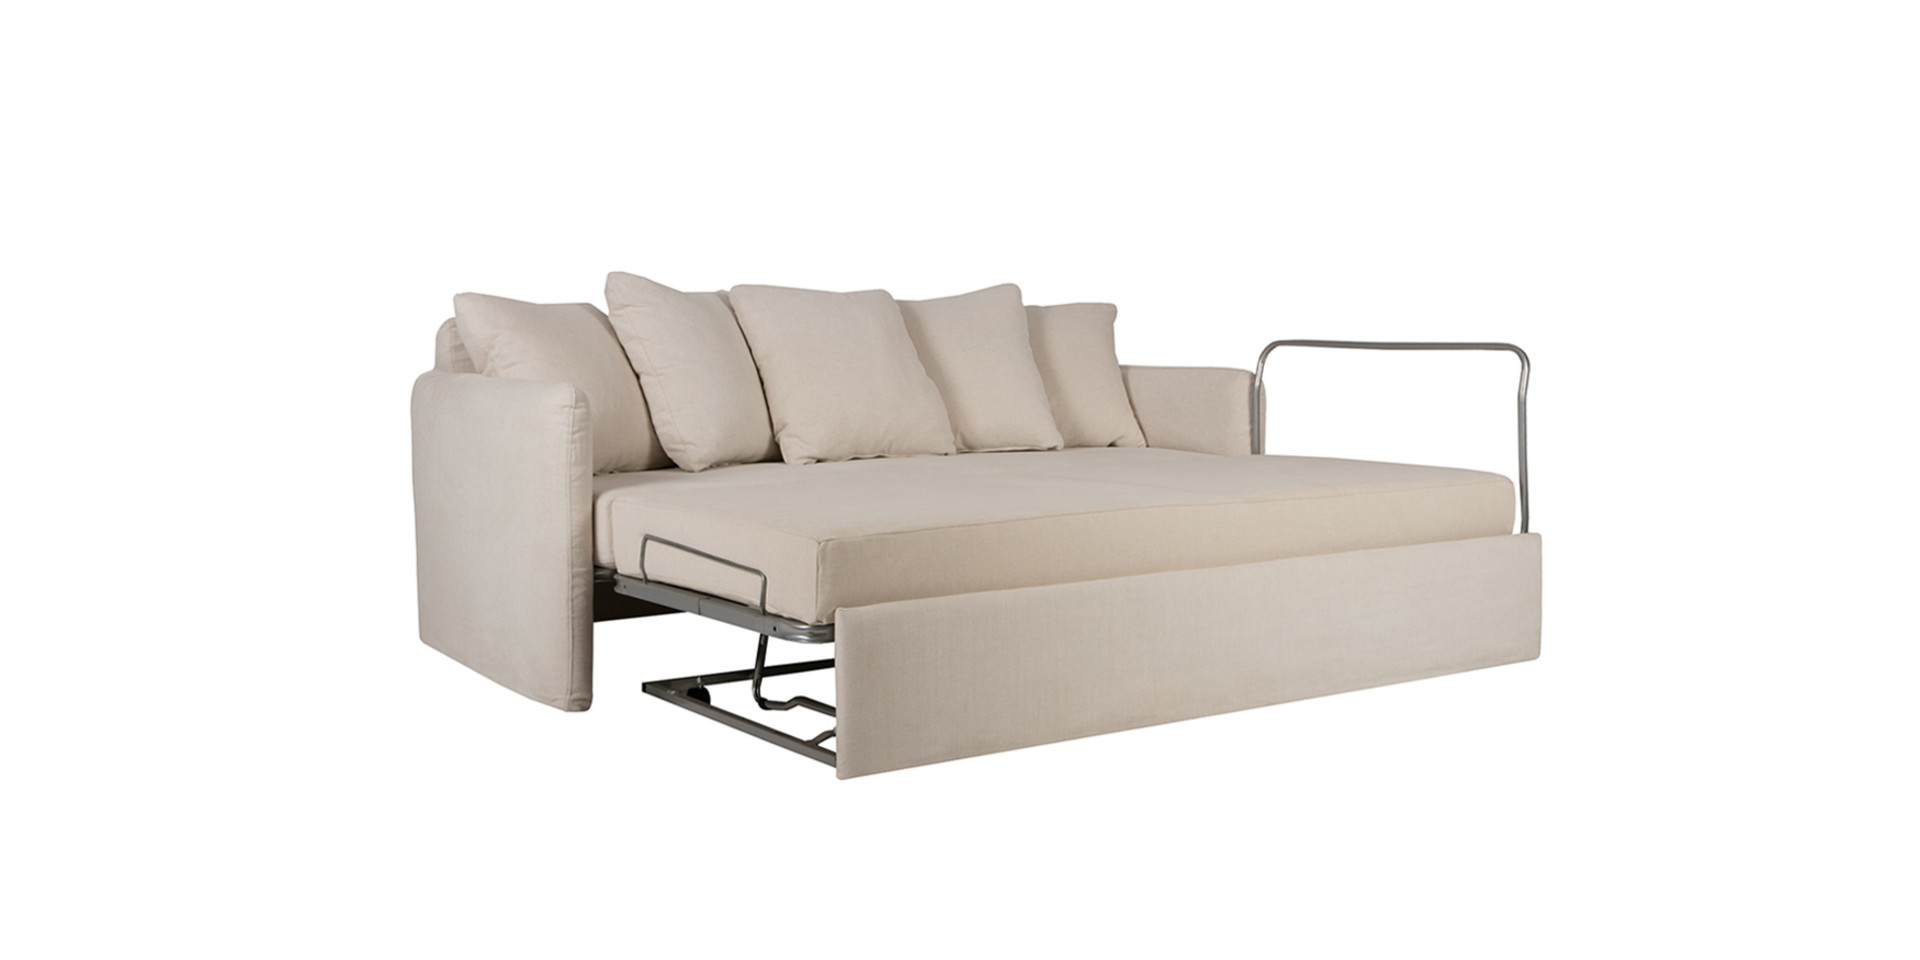 LOTTA_sofa_bed_caleido3790_beige_10